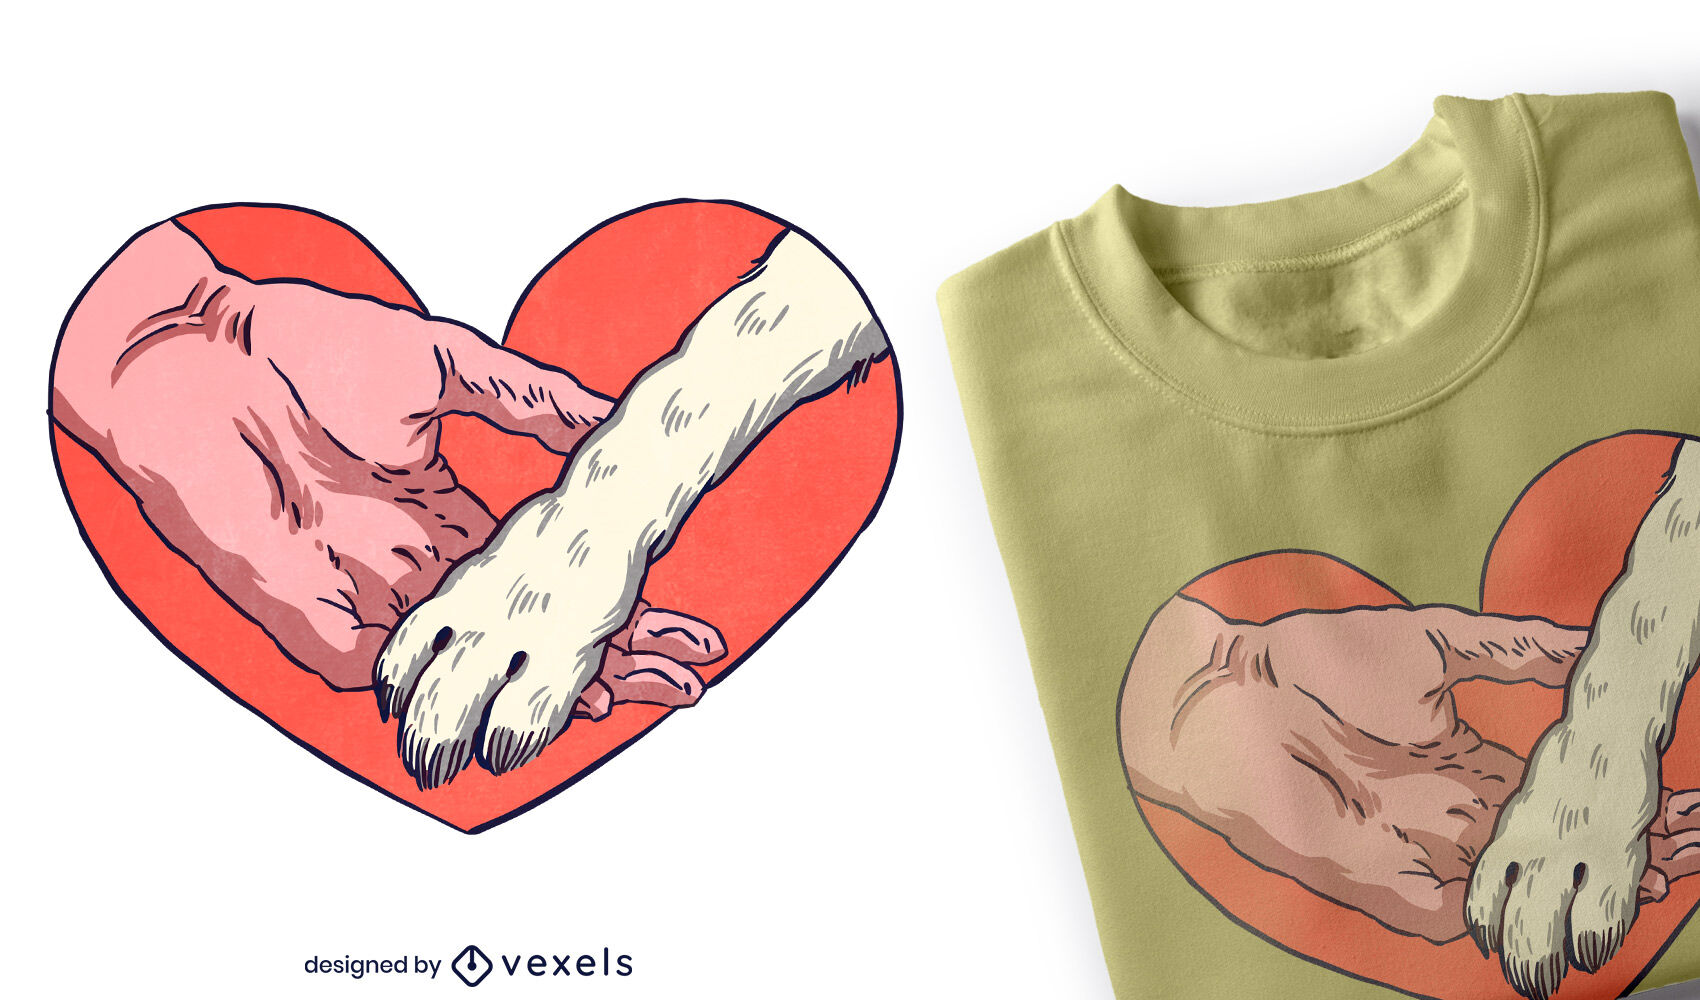 Animal paw and human hand in heart t-shirt design